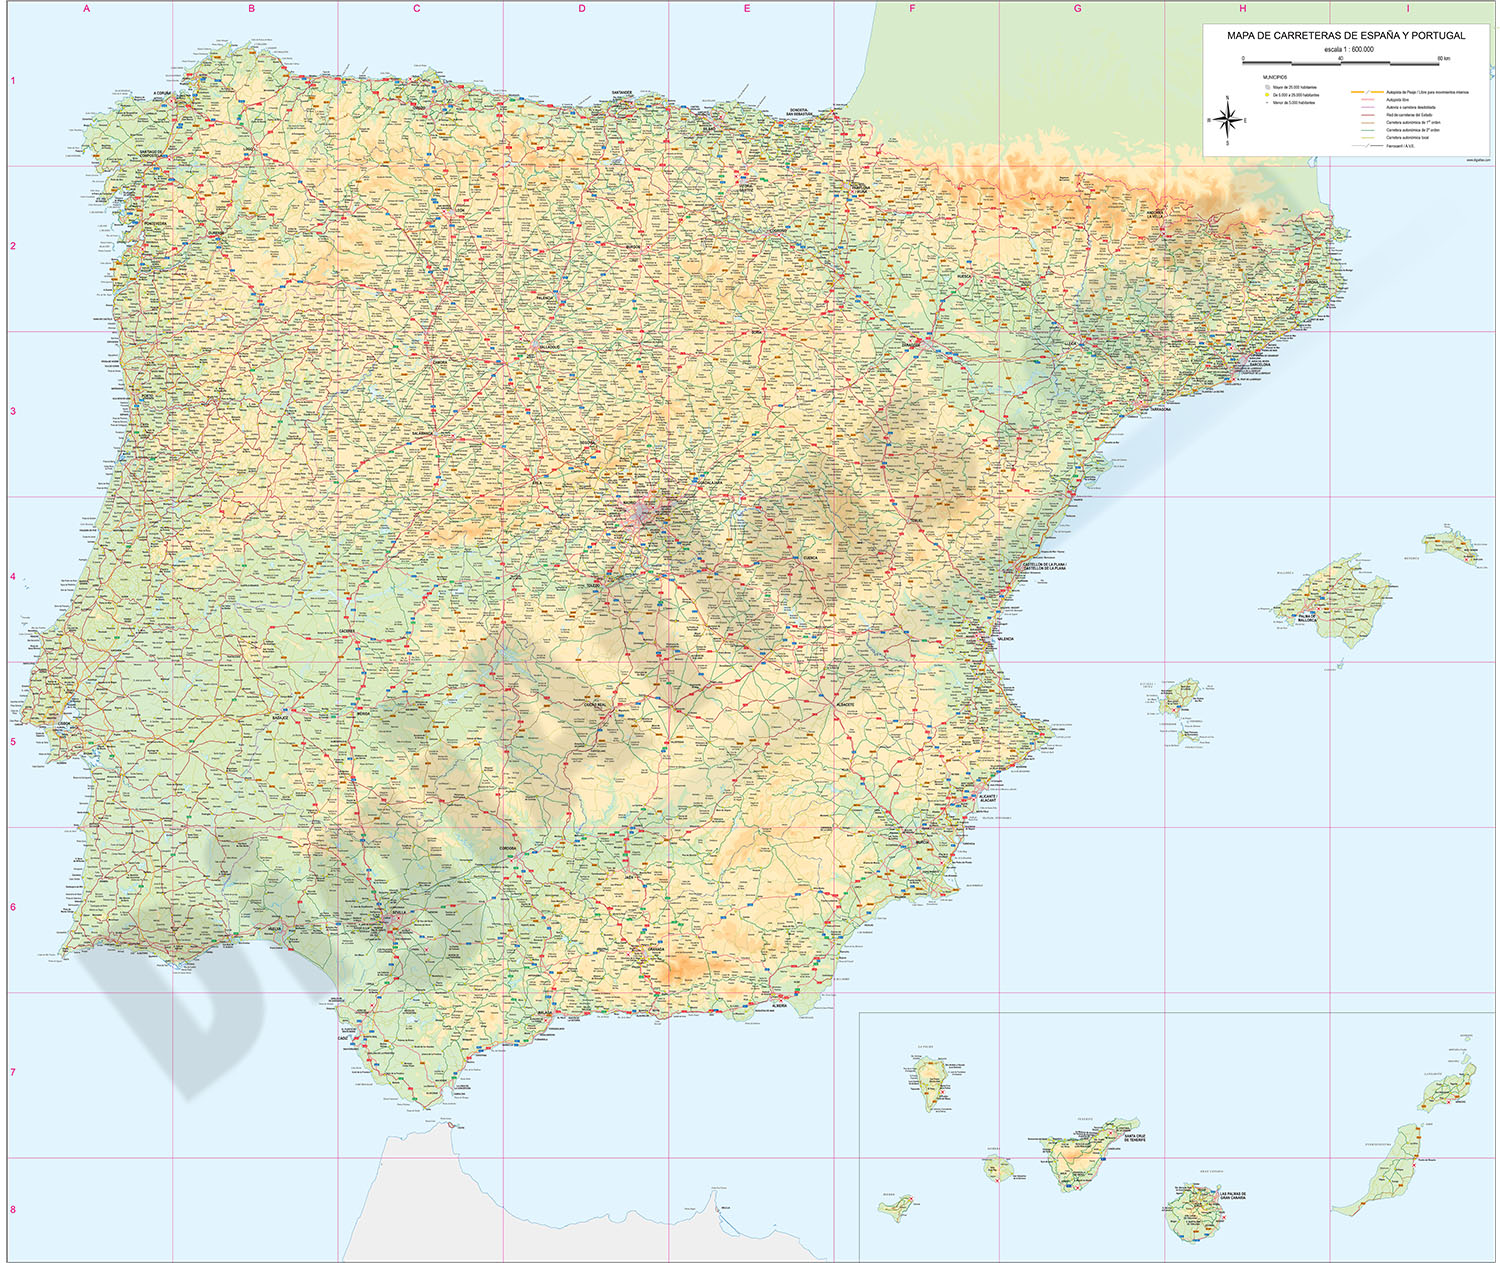 Road Map Of Portugal And Spain.Roadmap Of Spain And Portugal